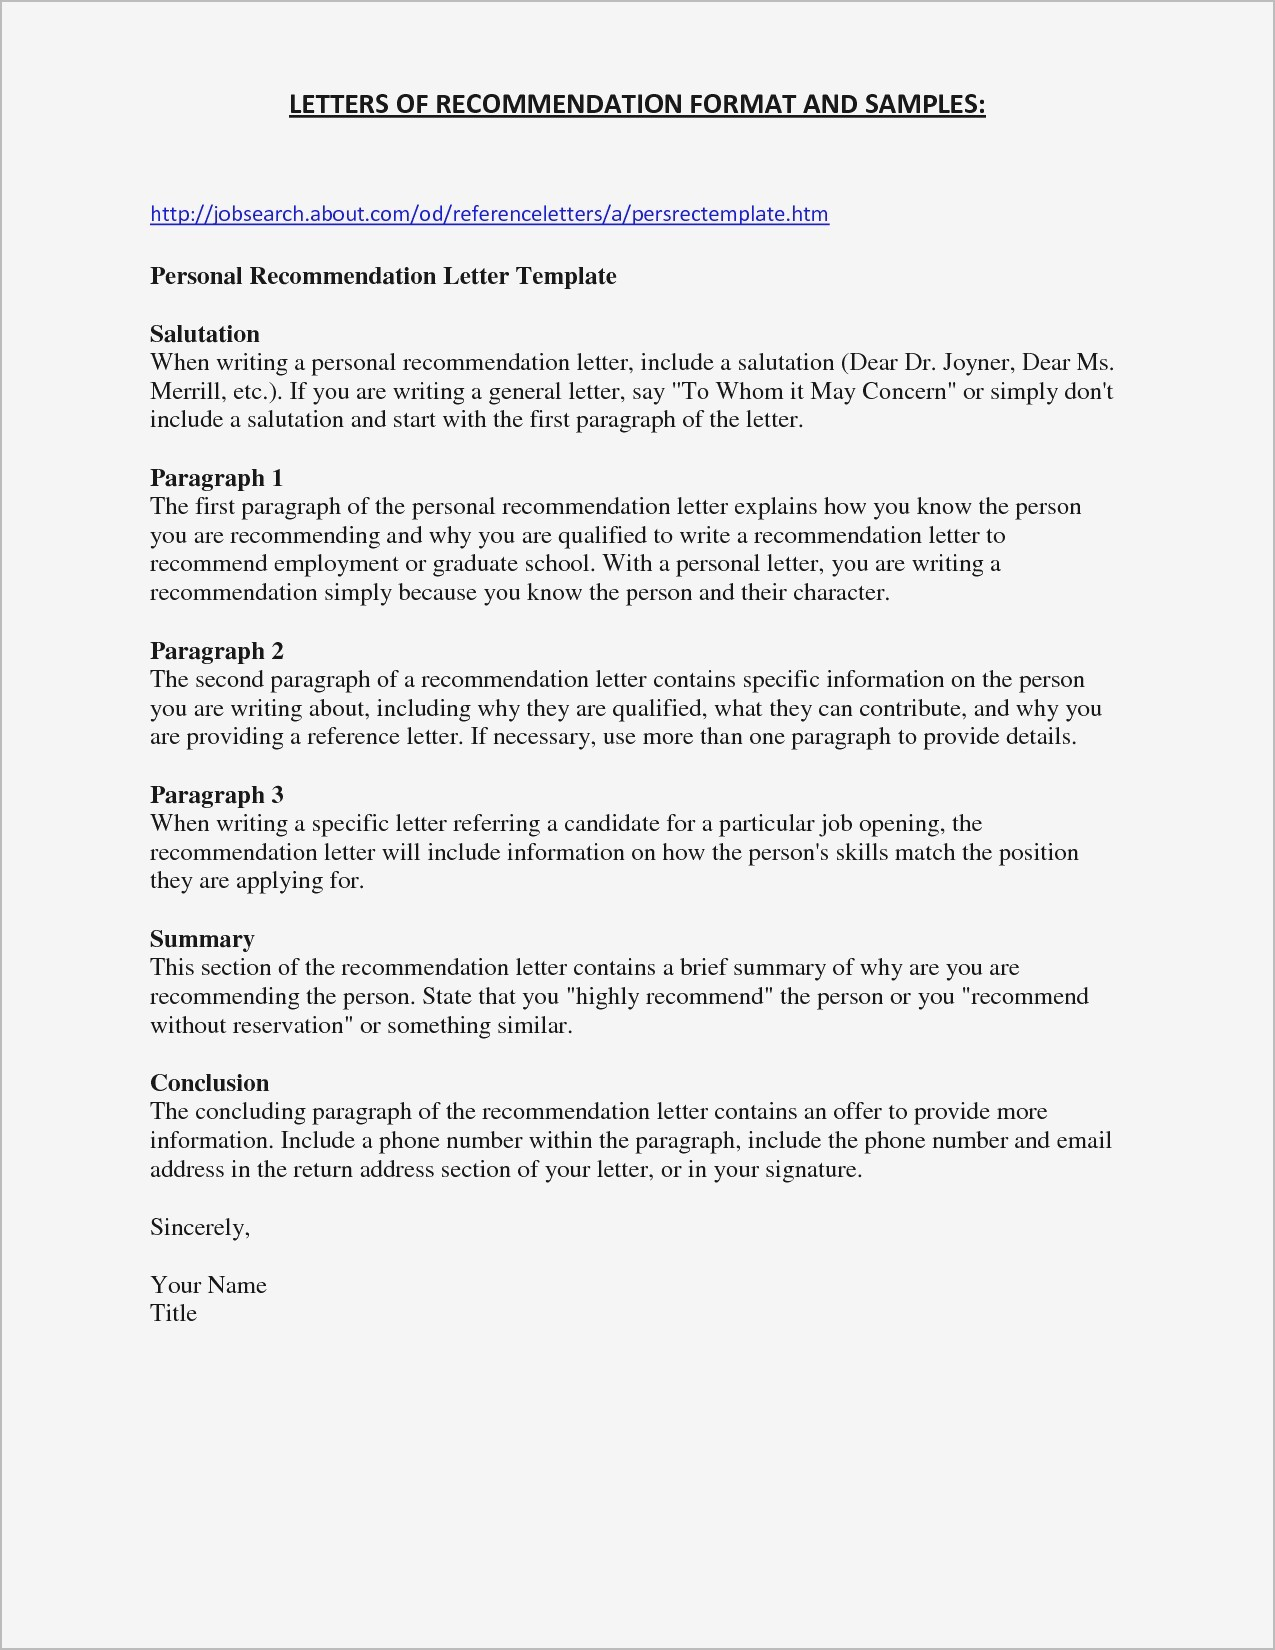 Generic Reference Letter Template - Personal Reference Letter for Job Valid Sample Personal Reference